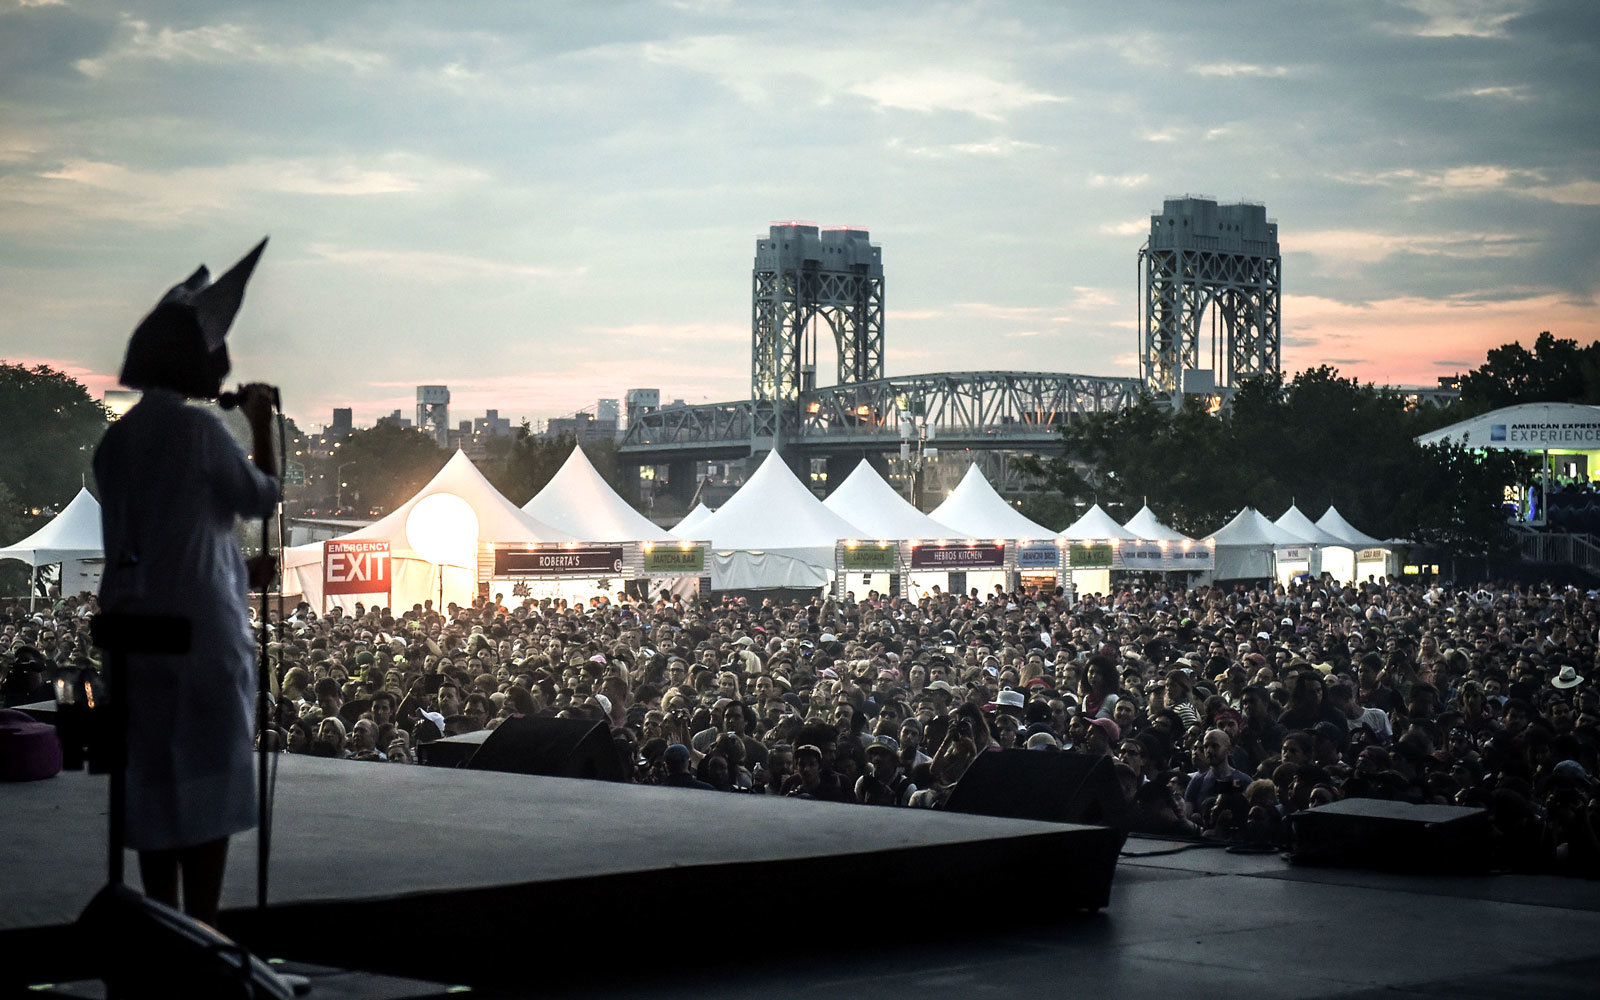 Panoramic-Festival-New-York-City-MUSICFESTS0117.jpg